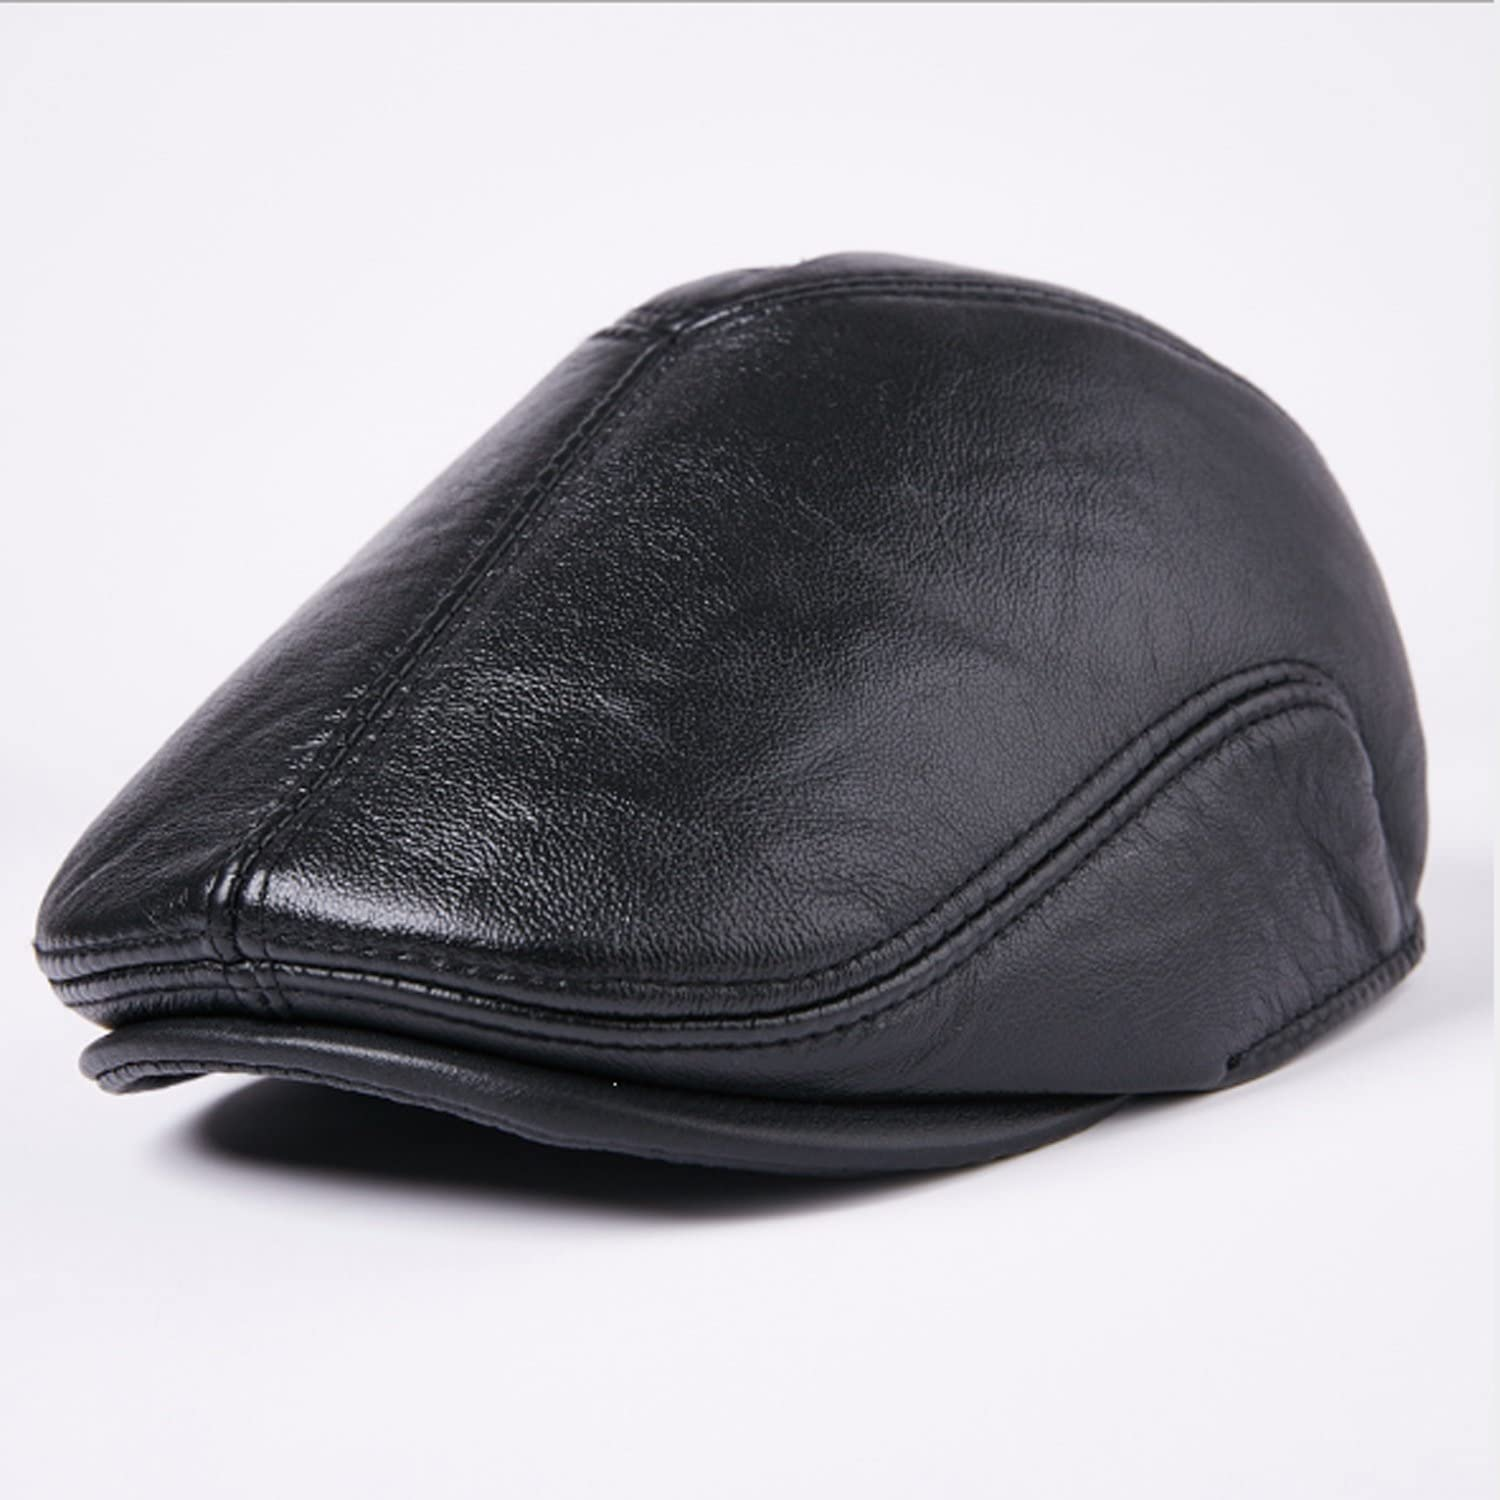 Hat leather First layer cowhide cap duc Male Clearance SALE! Limited time! free Fashion